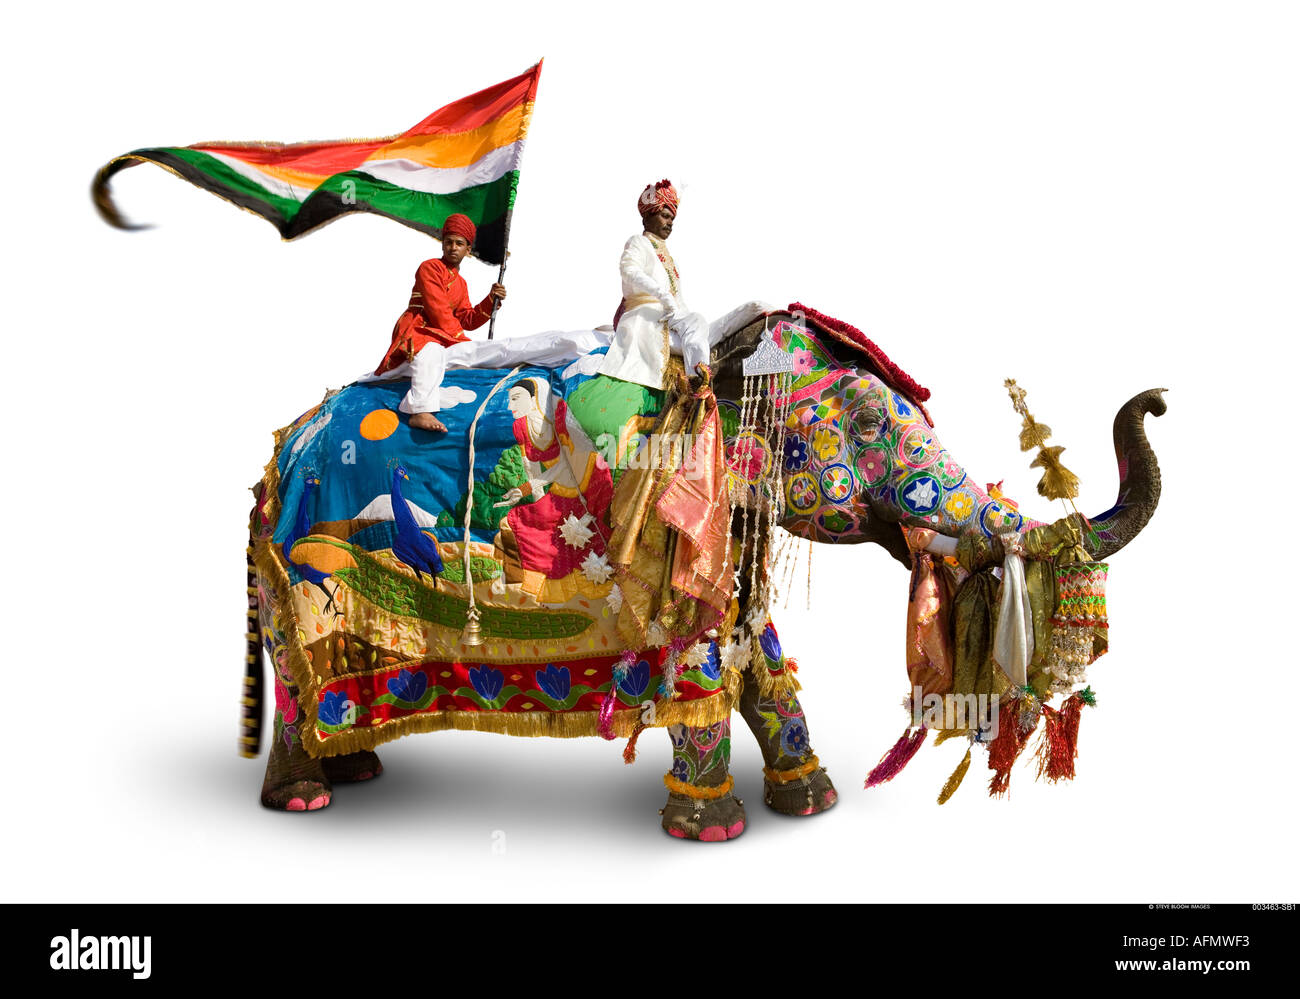 Elephant mahout and flag bearer all dressed for the Jaipur festival India on a white background - Stock Image